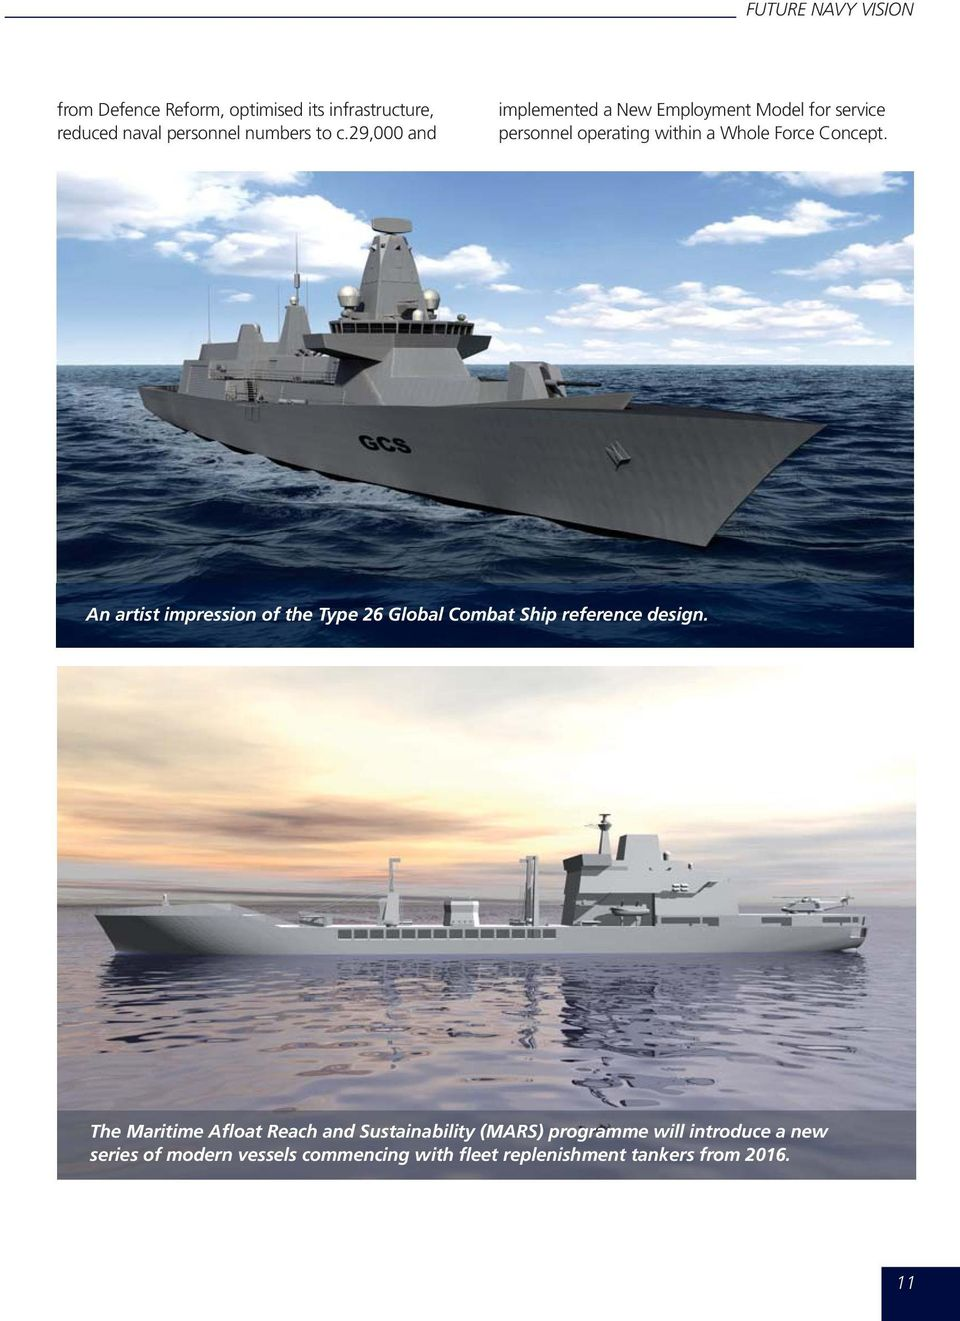 An artist impression of the Type 26 Global Combat Ship reference design.